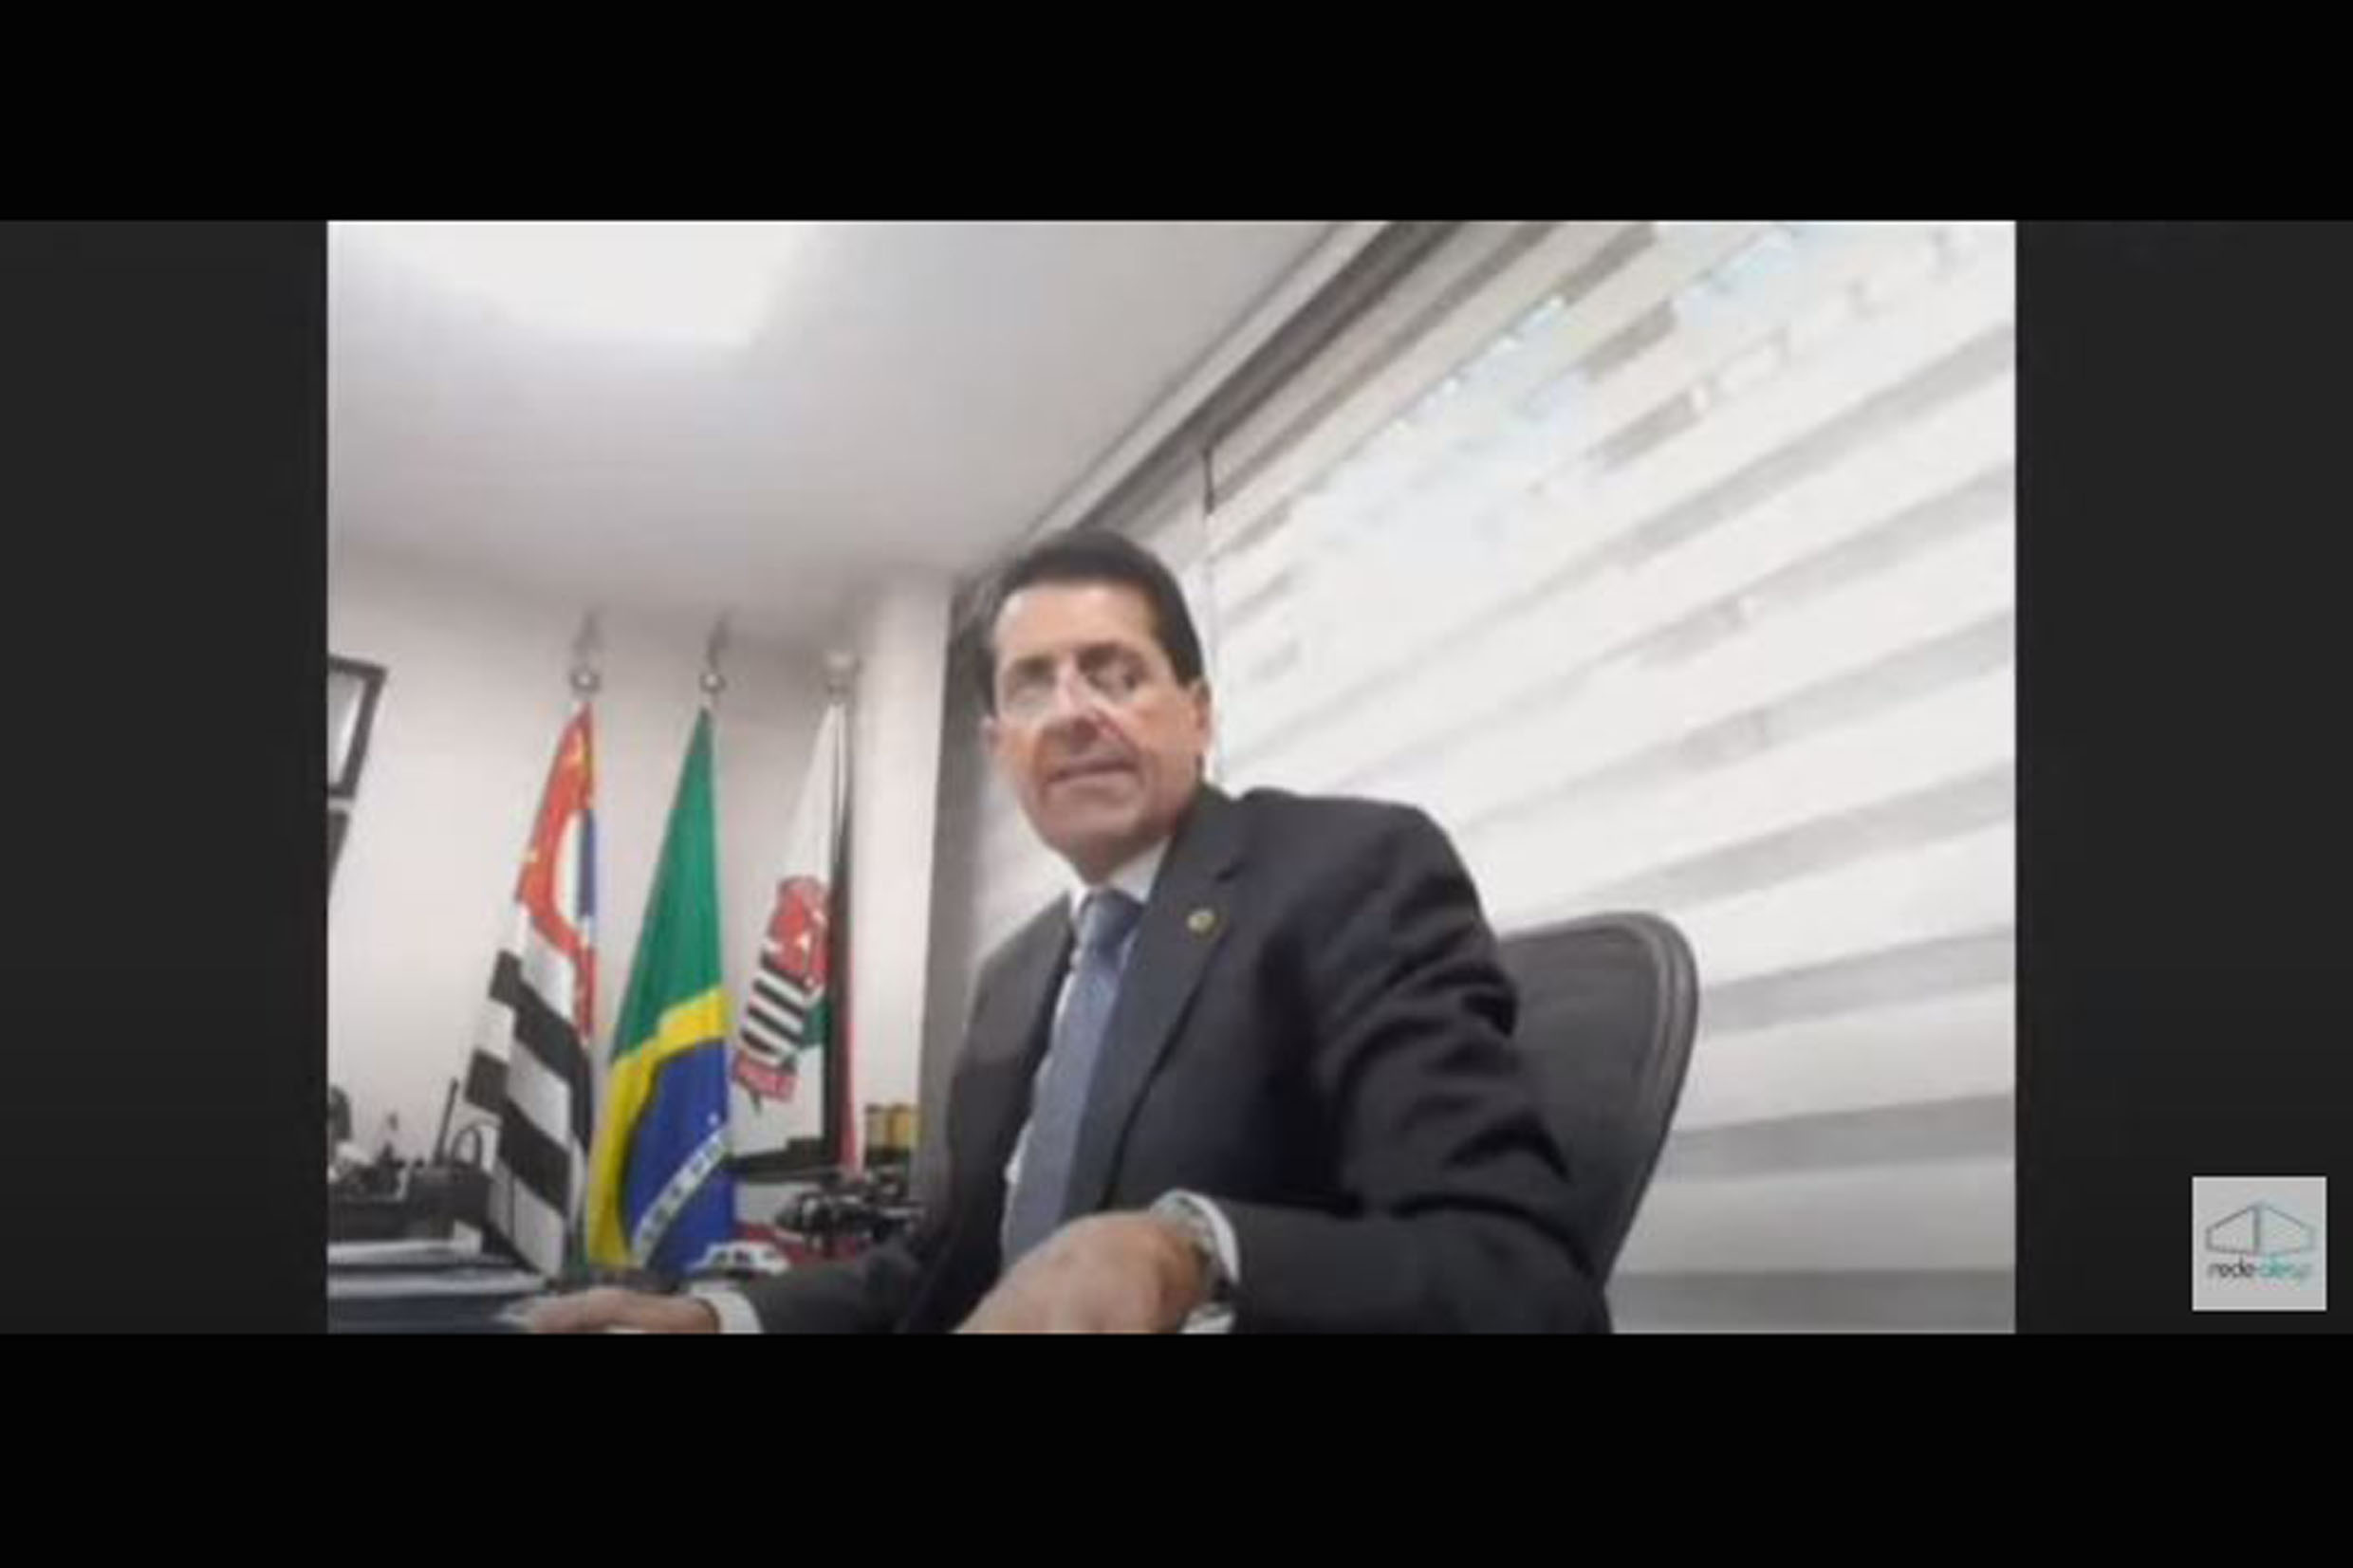 Delegado Olim preside a comissão em ambiente virtual<a style='float:right' href='https://www3.al.sp.gov.br/repositorio/noticia/N-04-2021/fg264297.jpg' target=_blank><img src='/_img/material-file-download-white.png' width='14px' alt='Clique para baixar a imagem'></a>